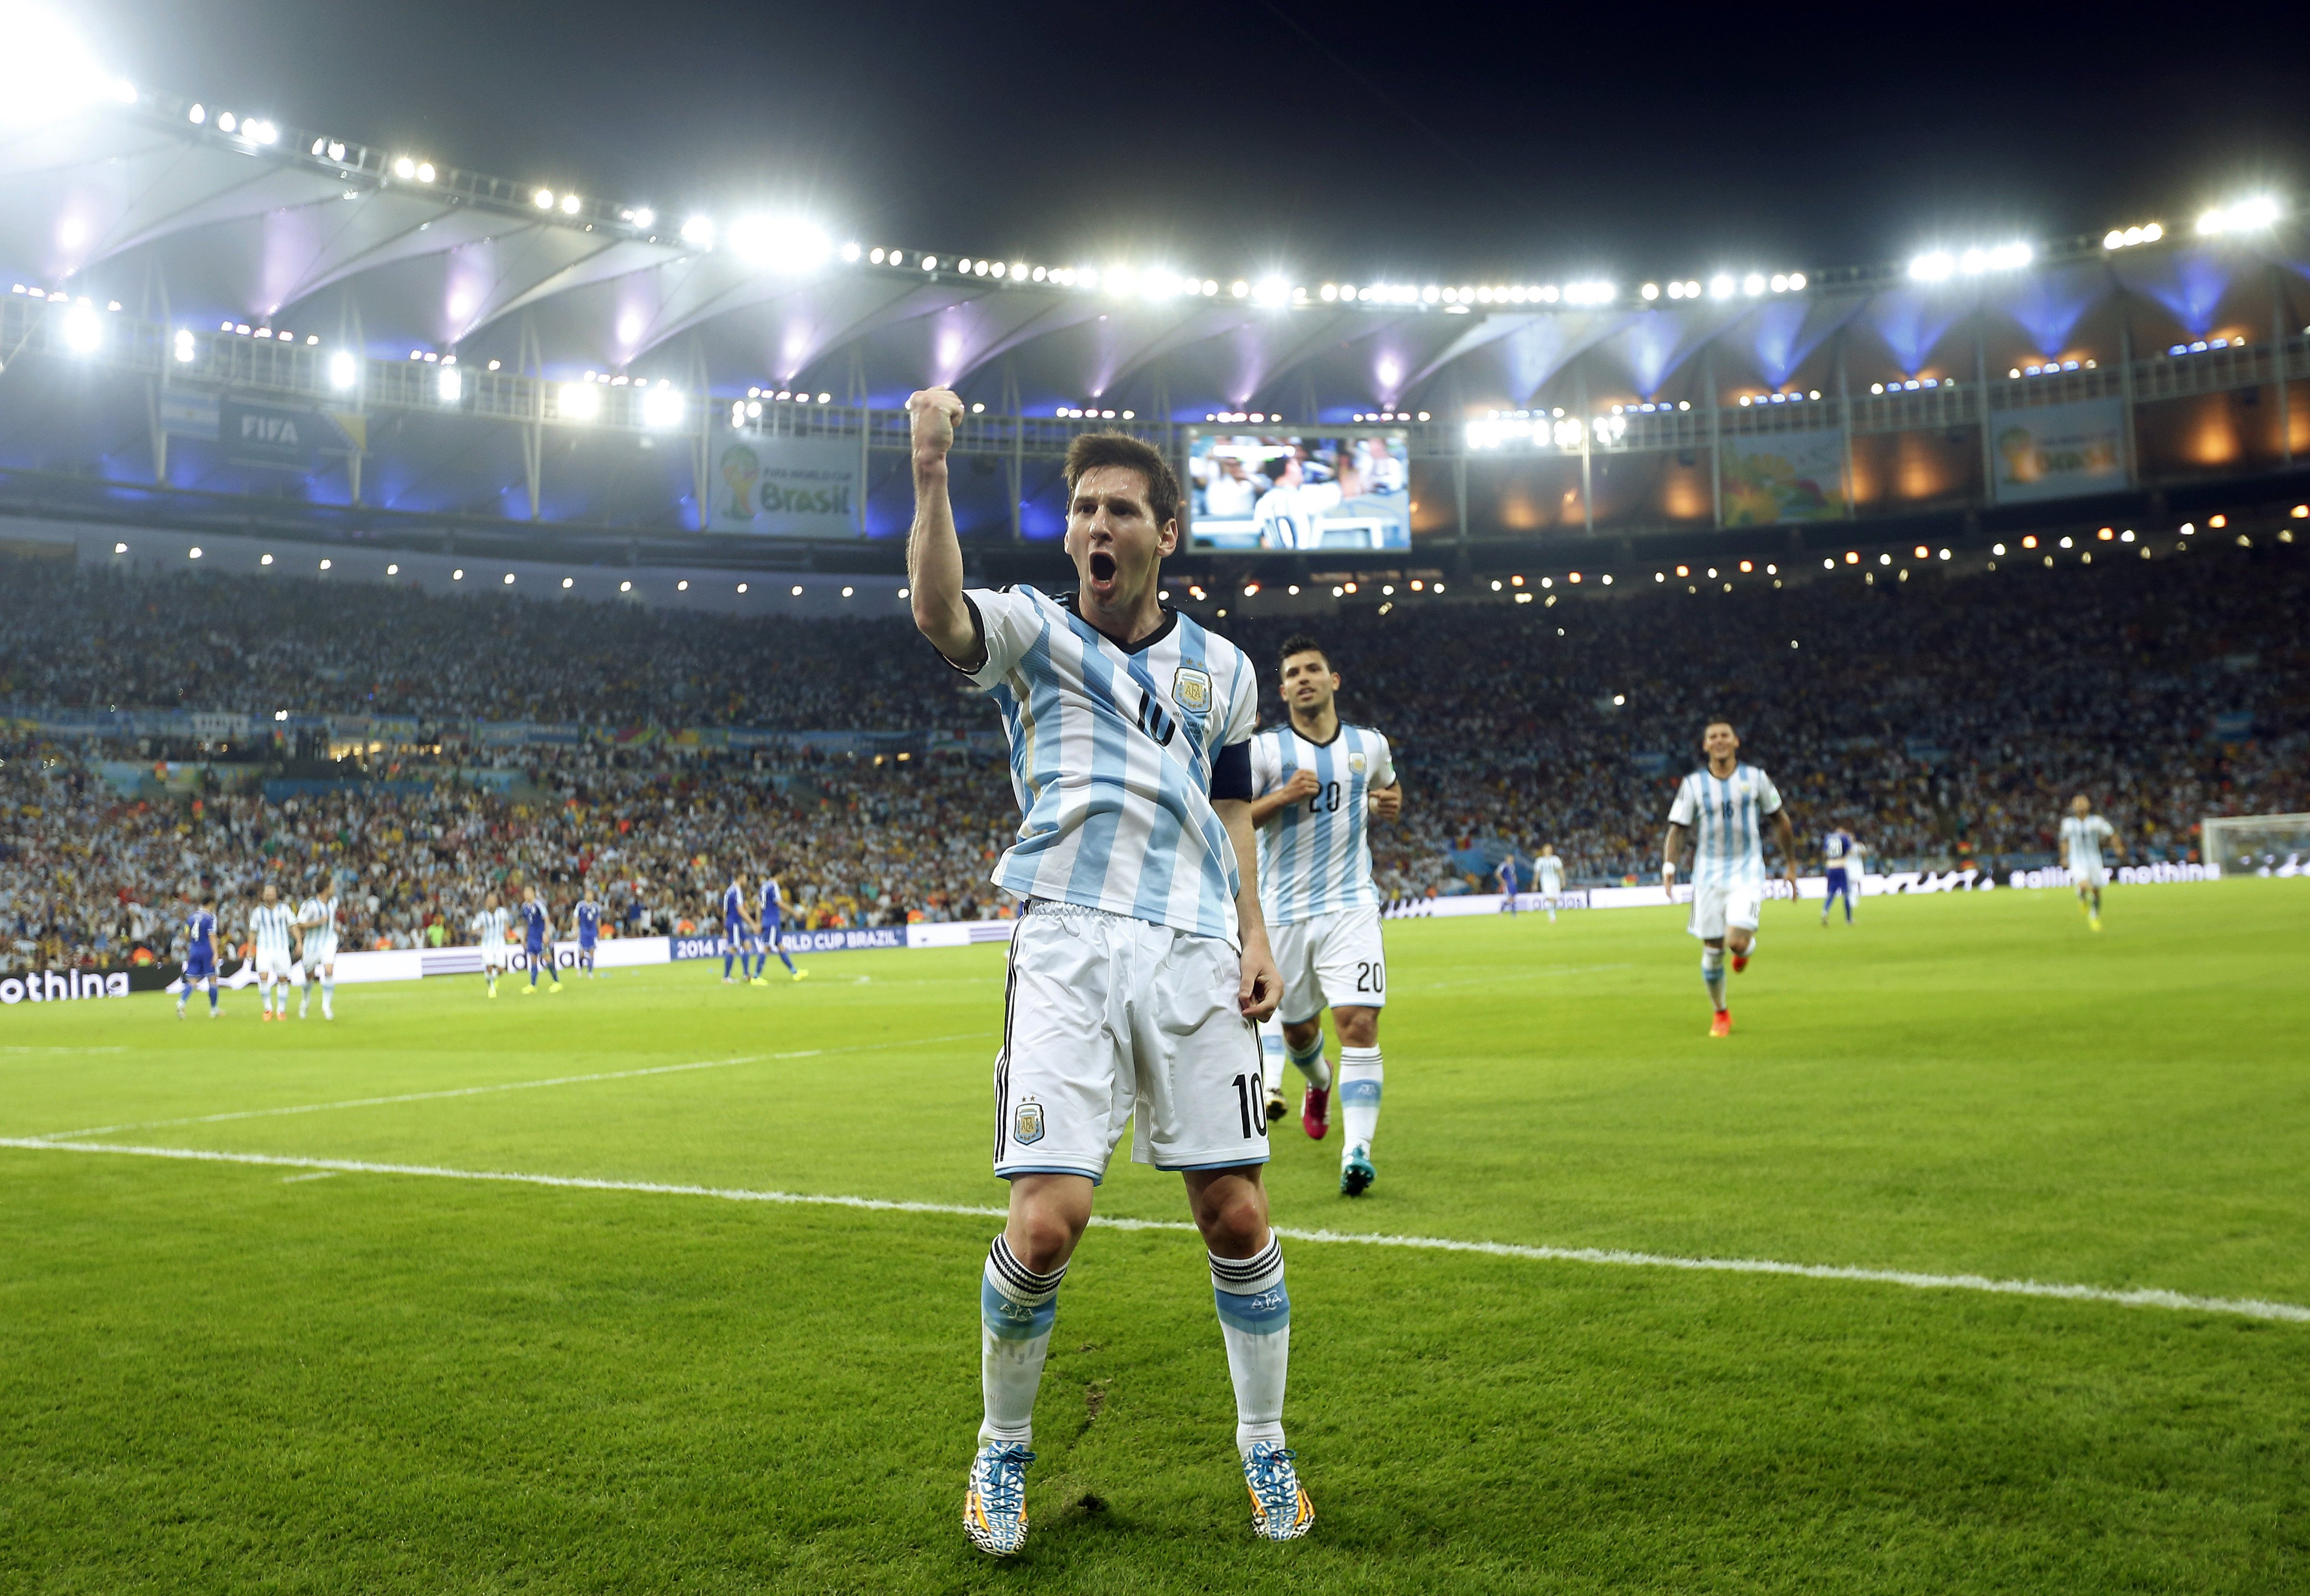 Argentina's Lionel Messi celebrates scoring his side's second goal during the group F World Cup soccer match between Argentina and Bosnia at the Maracana Stadium in Rio de Janeiro, Brazil, on June 15, 2014.